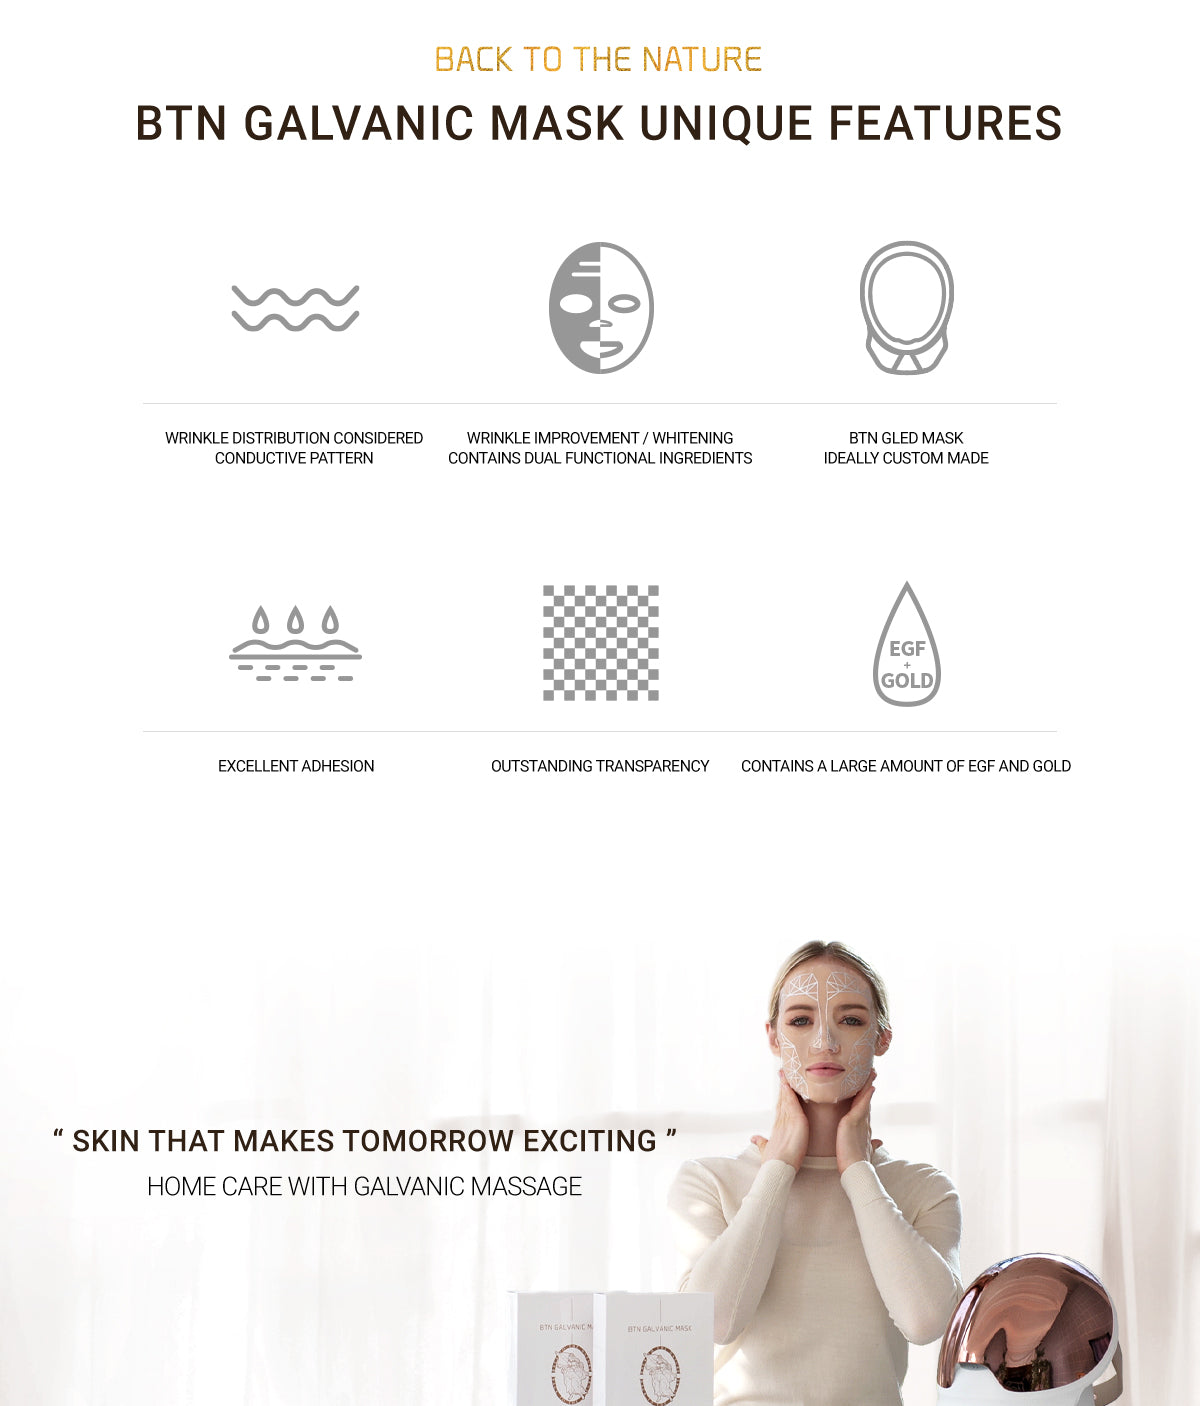 BTN Galvanic Mask Unique Features Such as Wrinkle Distribution Considered Conductive Pattern And Outstanding Transparency